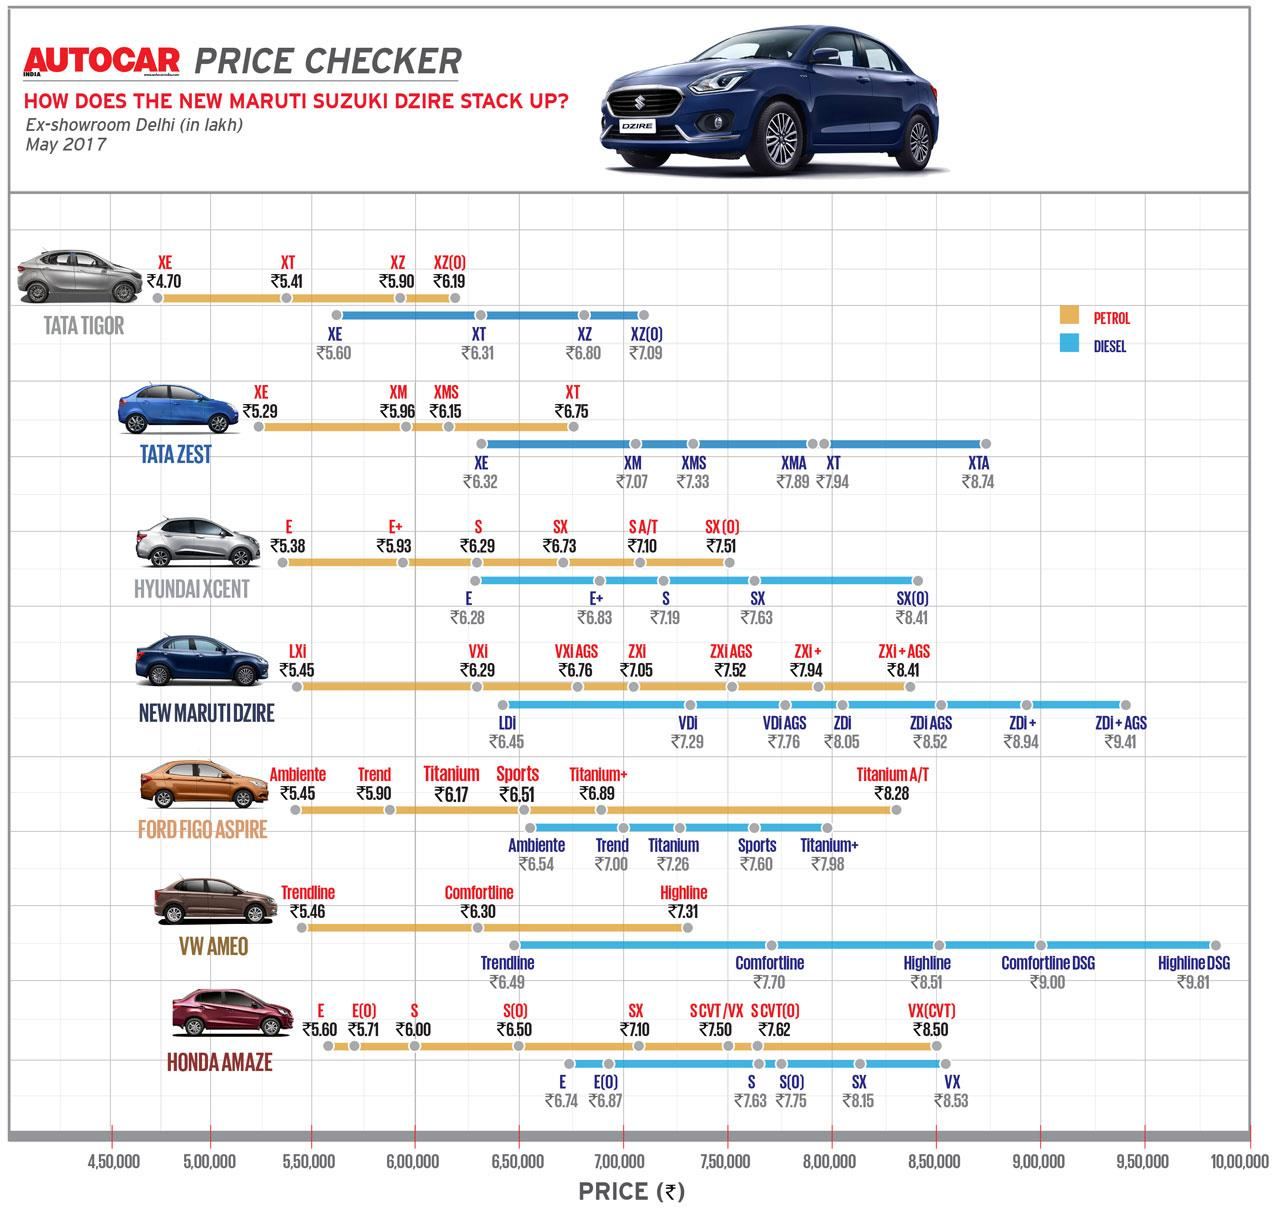 Autocar Price Checker: How does the Maruti Dzire stack up?